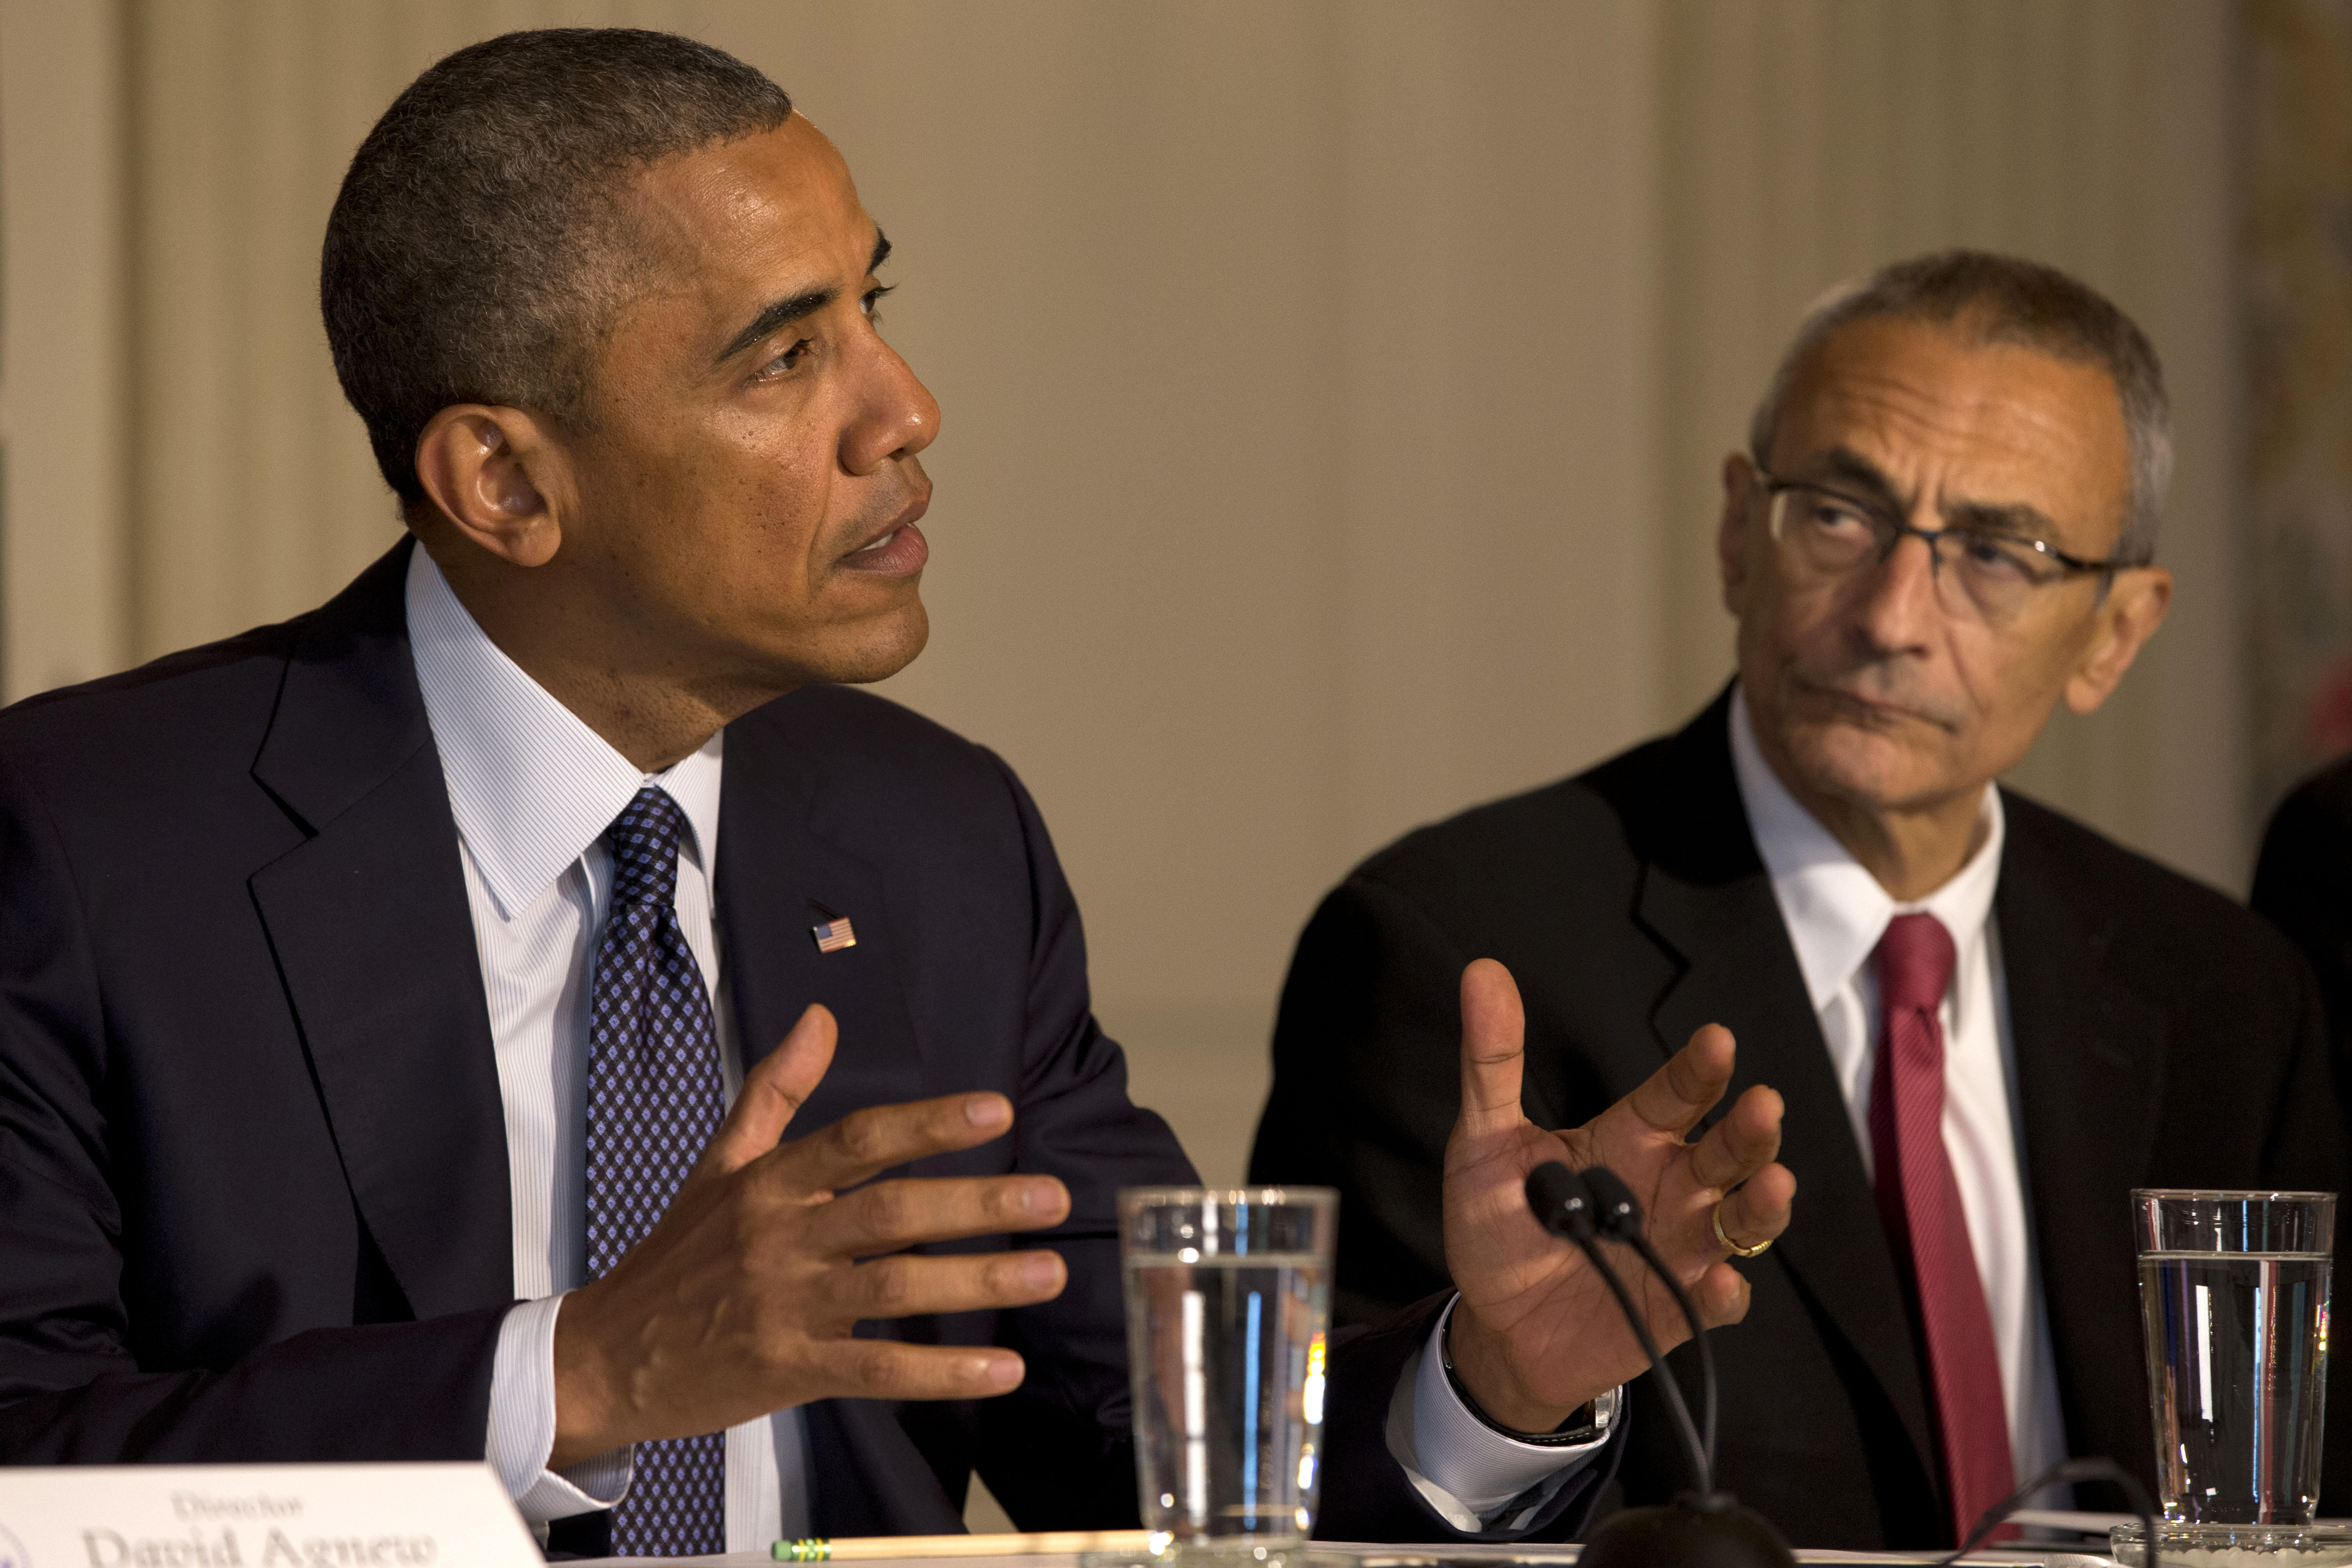 Leaked Podesta emails reveal 2008 correspondence with Obama - CBS News